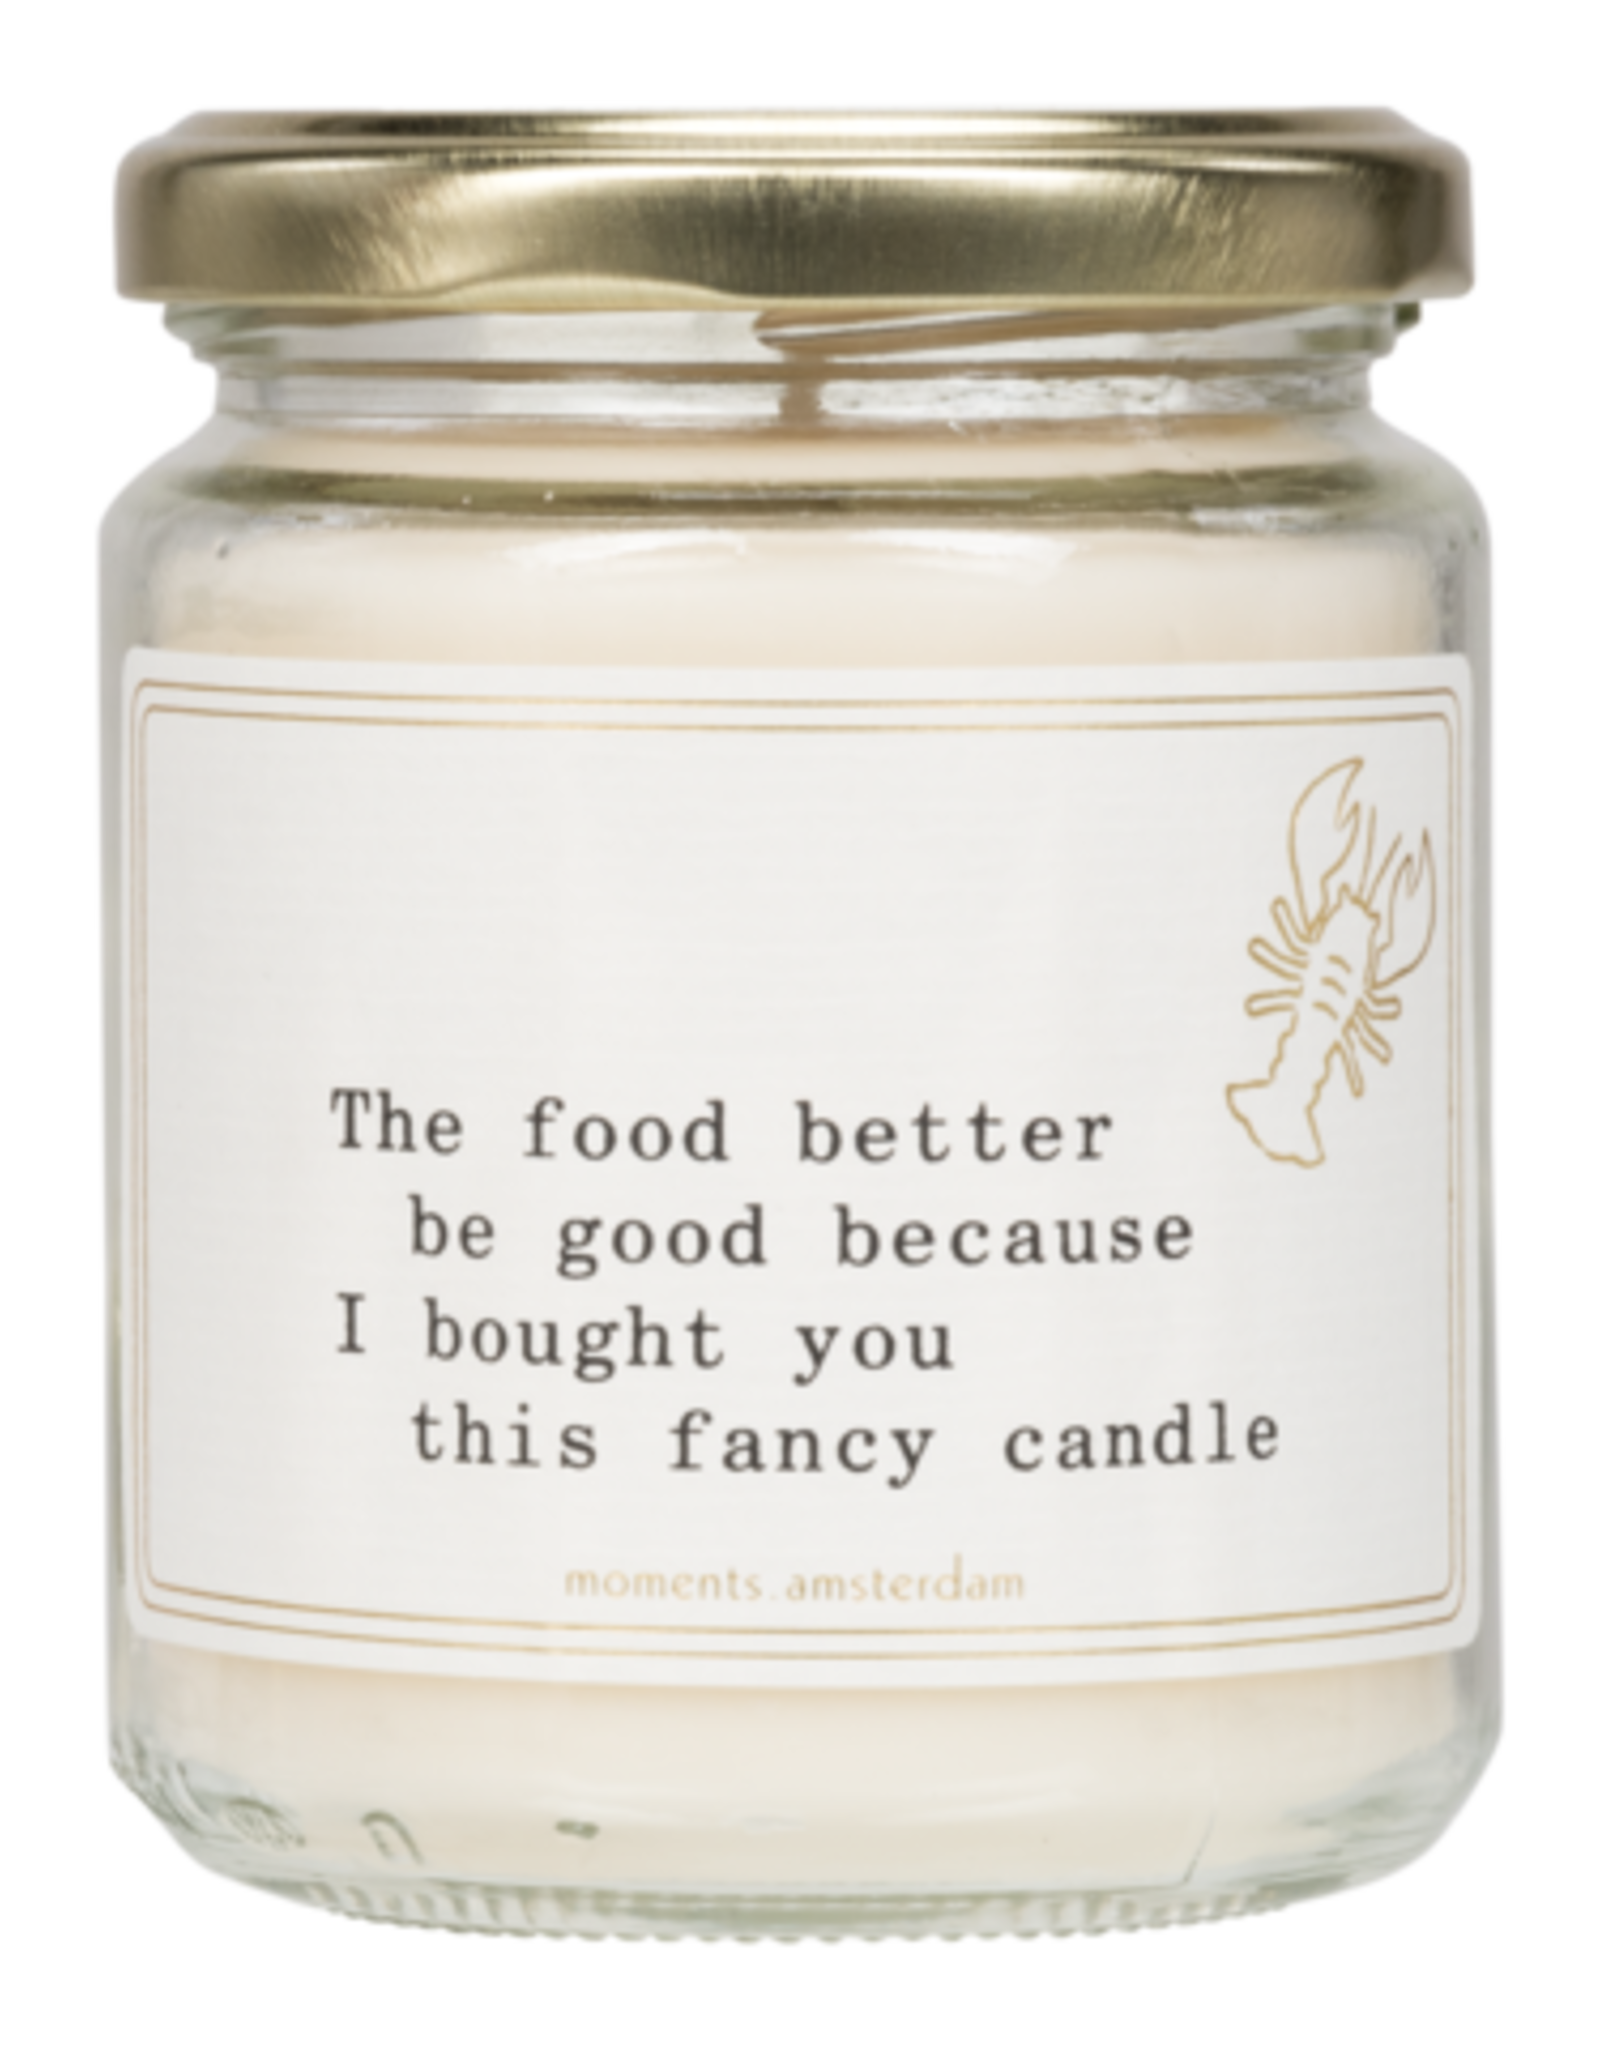 Moments - Little Candle - Fancy dinner